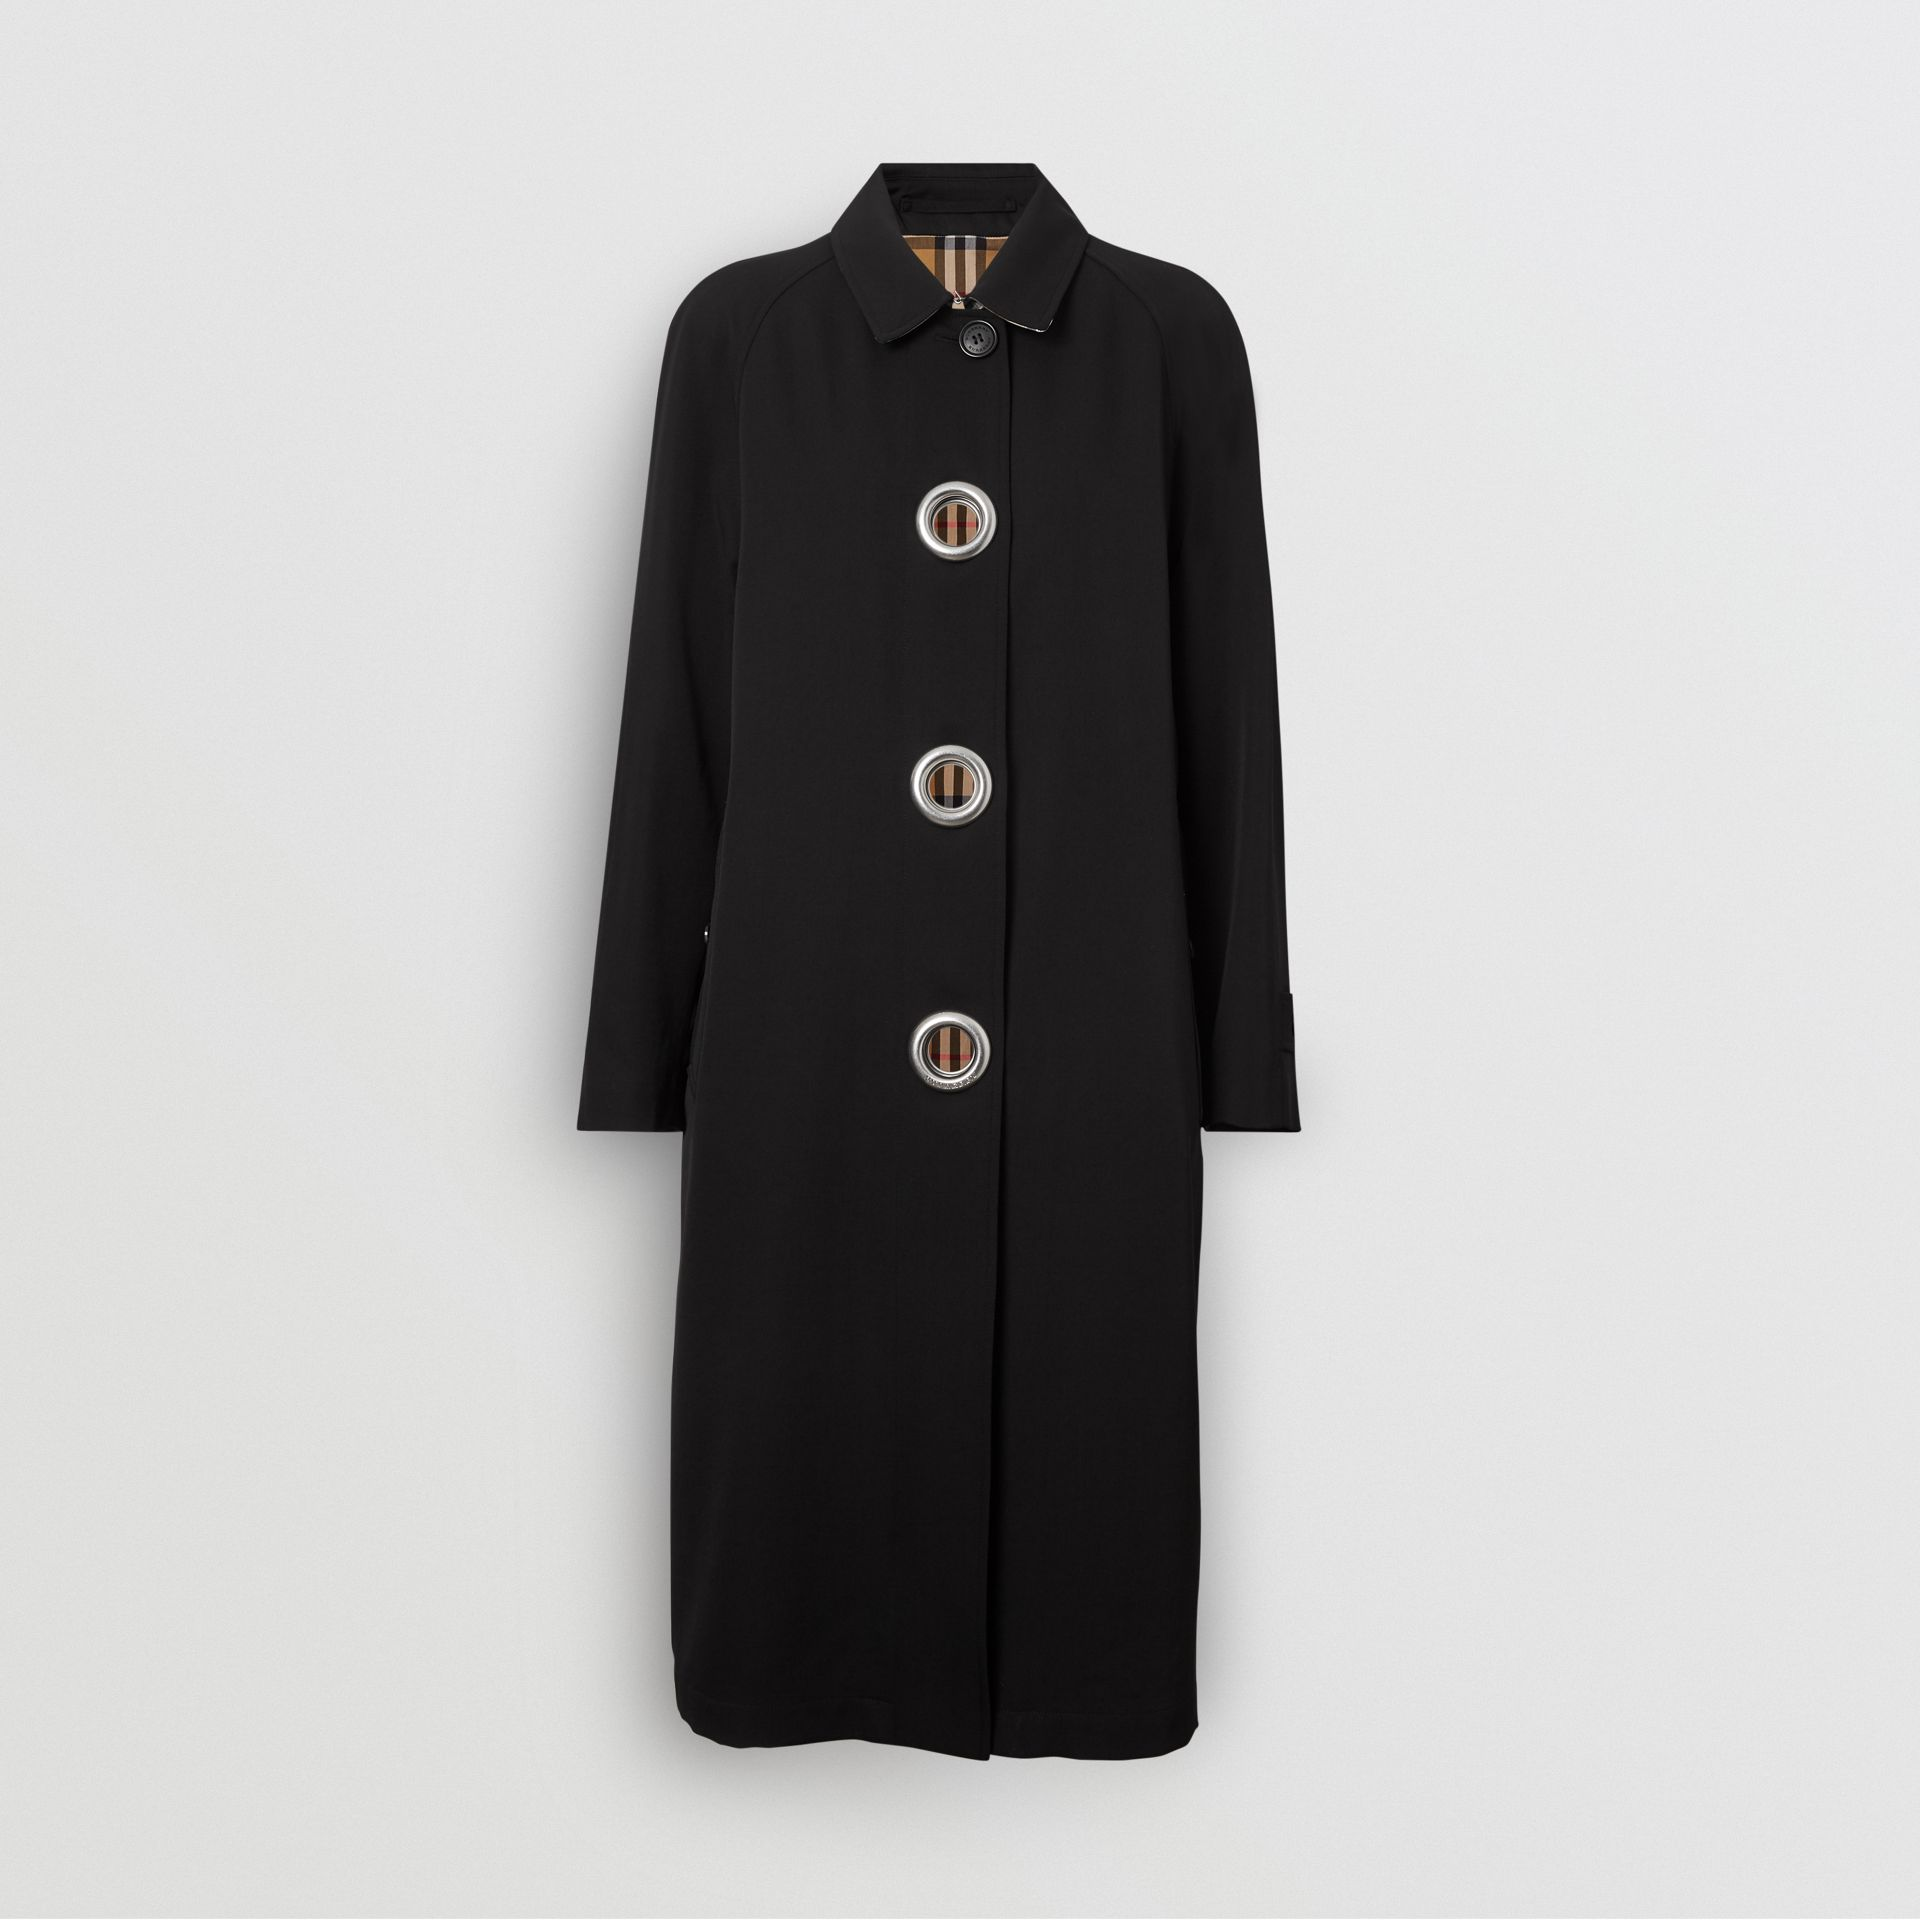 Grommet Detail Wool Gabardine Car Coat in Black - Women | Burberry - gallery image 3